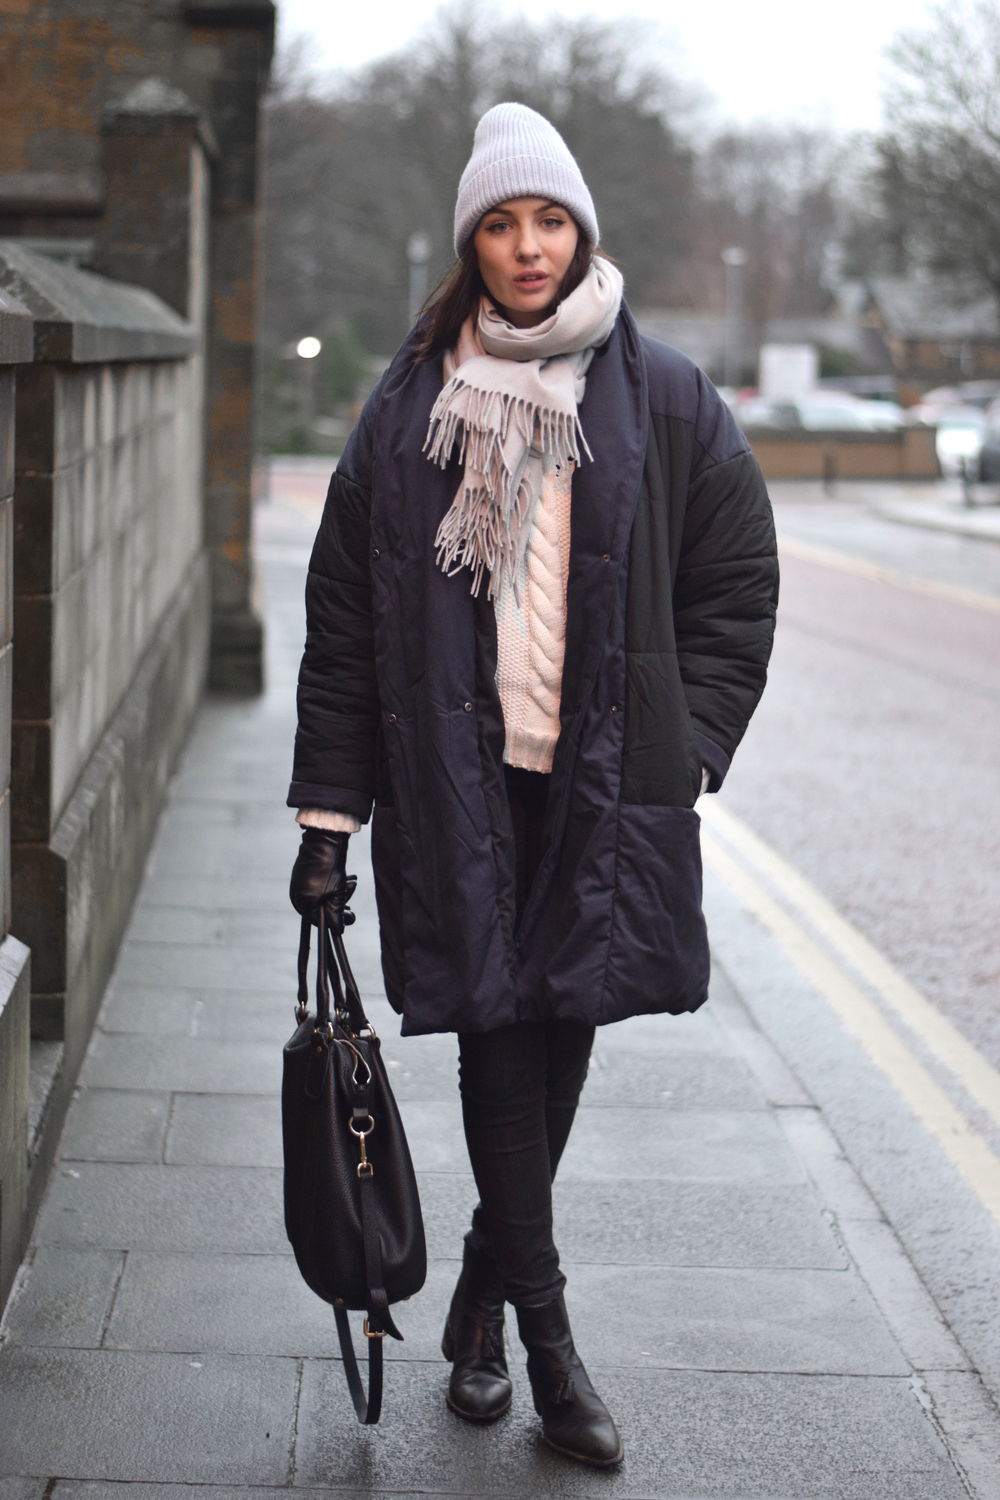 UK Fashion Blogger Shot From The Street